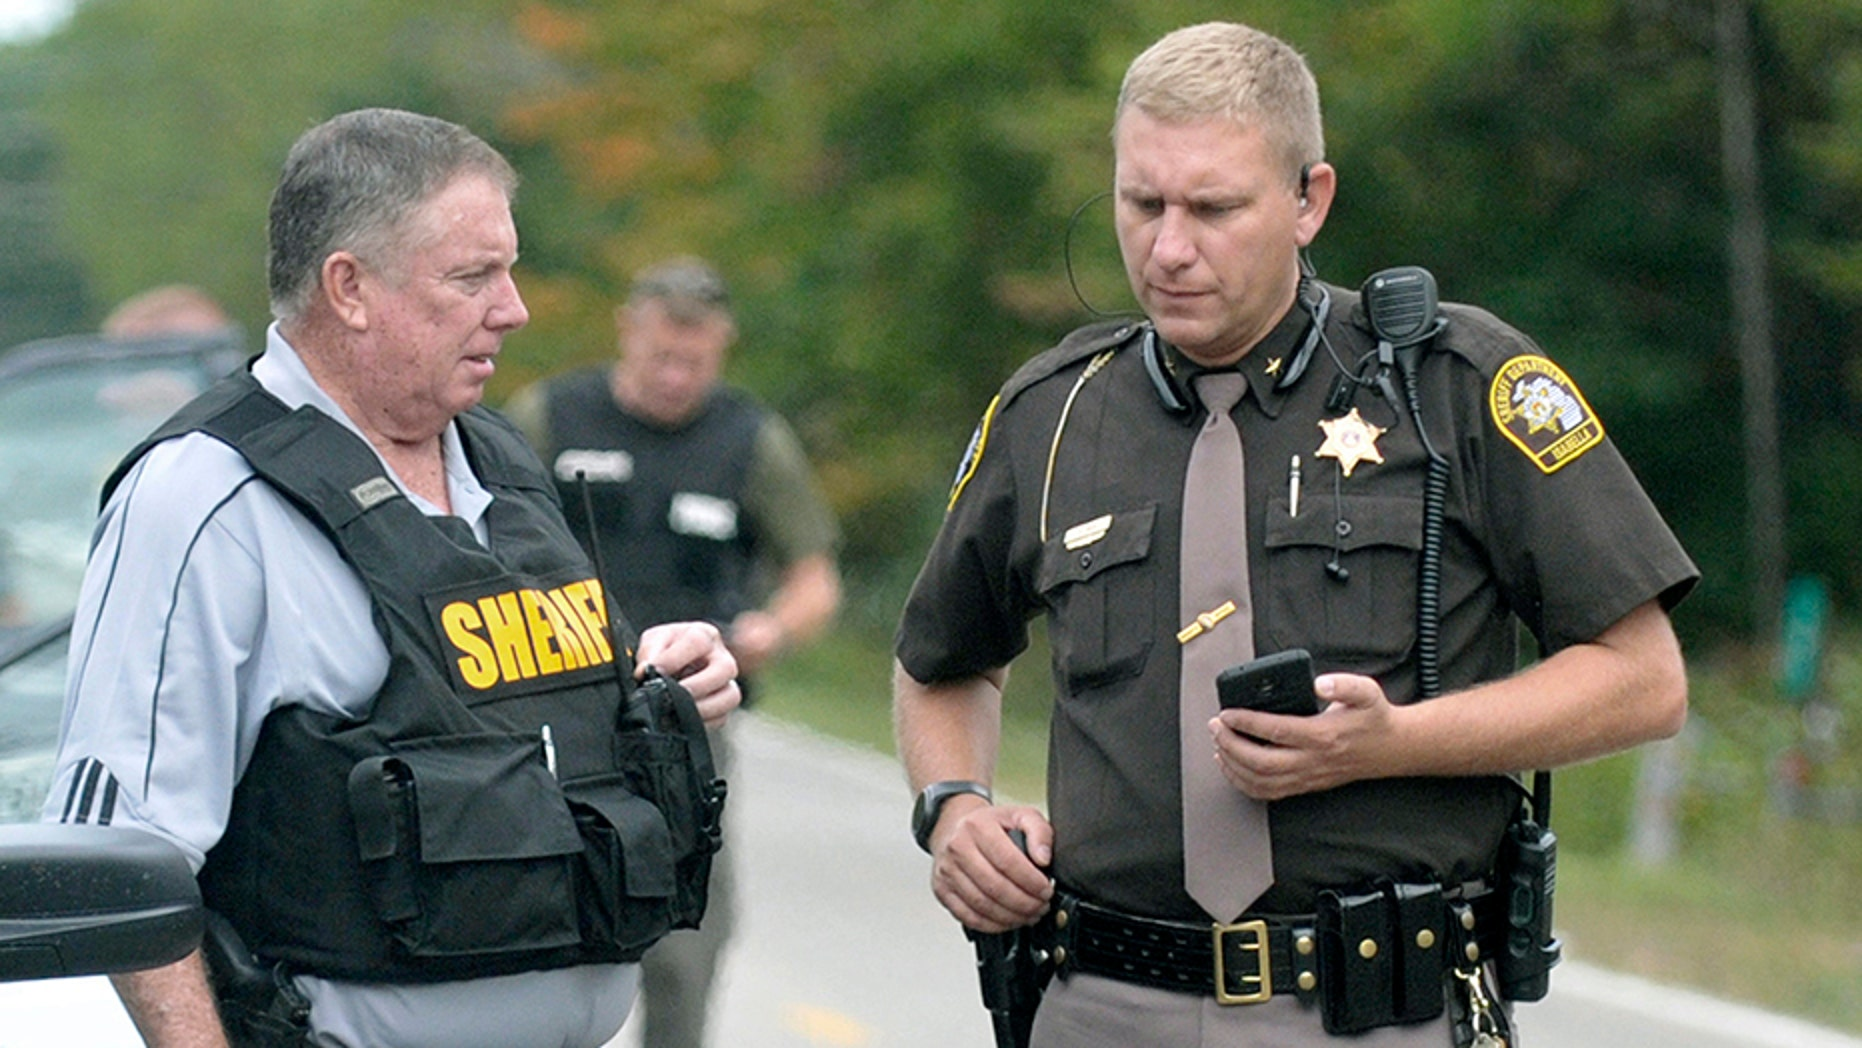 In this Sept. 27, 2017, photo, Isabella County Sheriff Michael Main, right, coordinates efforts in a police manhunt to locate a suspect in Michigan. Main is back in the news now, apologizing for accidentally leaving his gun in a mid-Michigan school gym locker room.